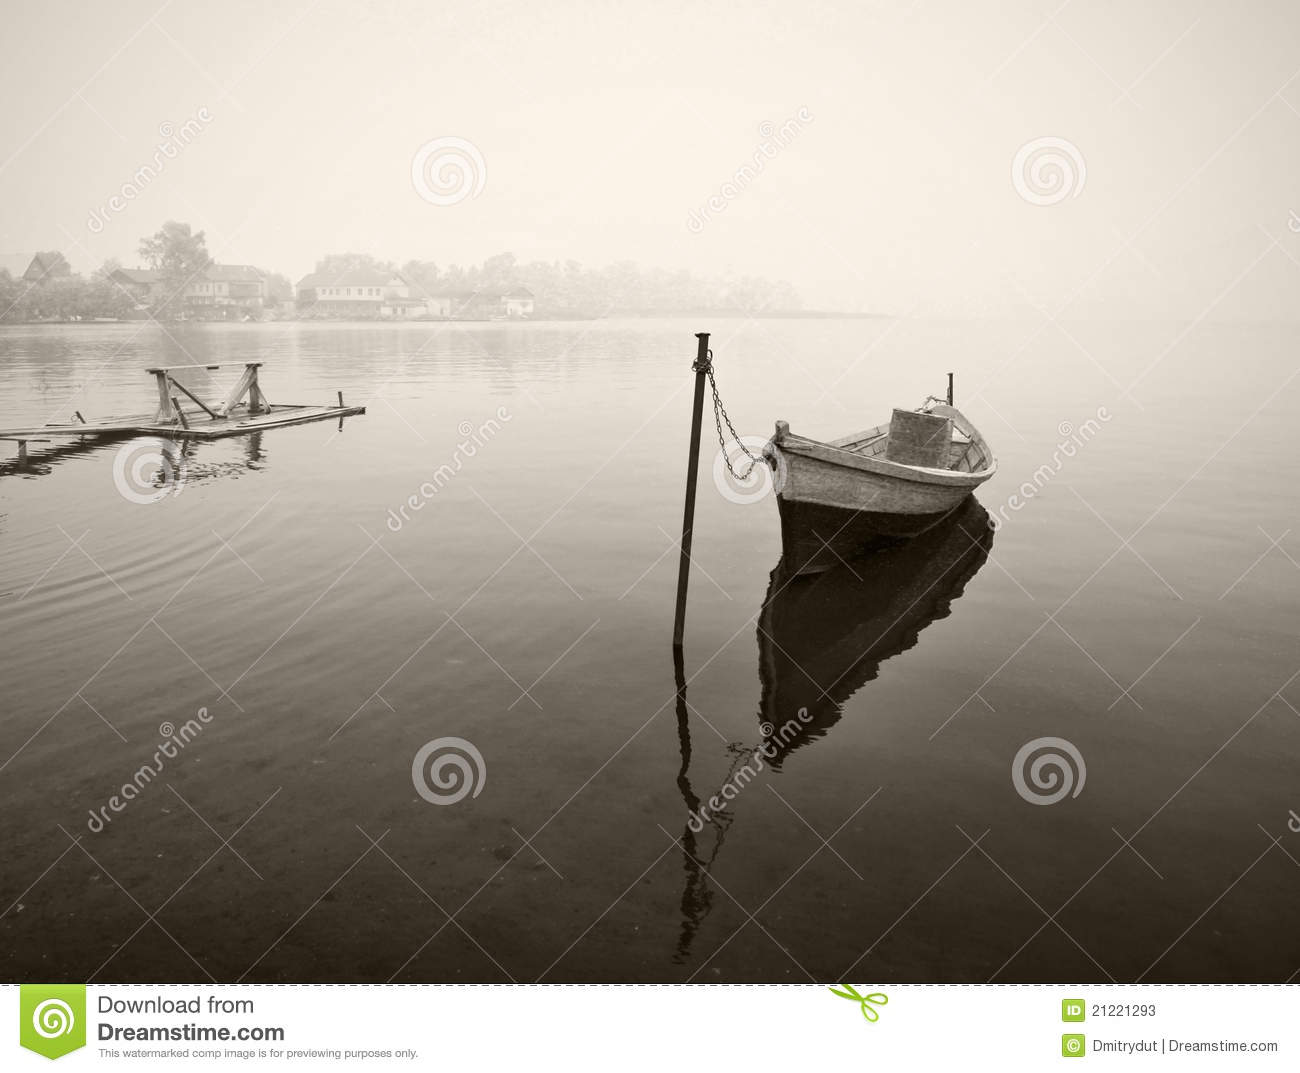 Old Wooden Boat In Fog, Black And White Stock Photos - Image: 21221293